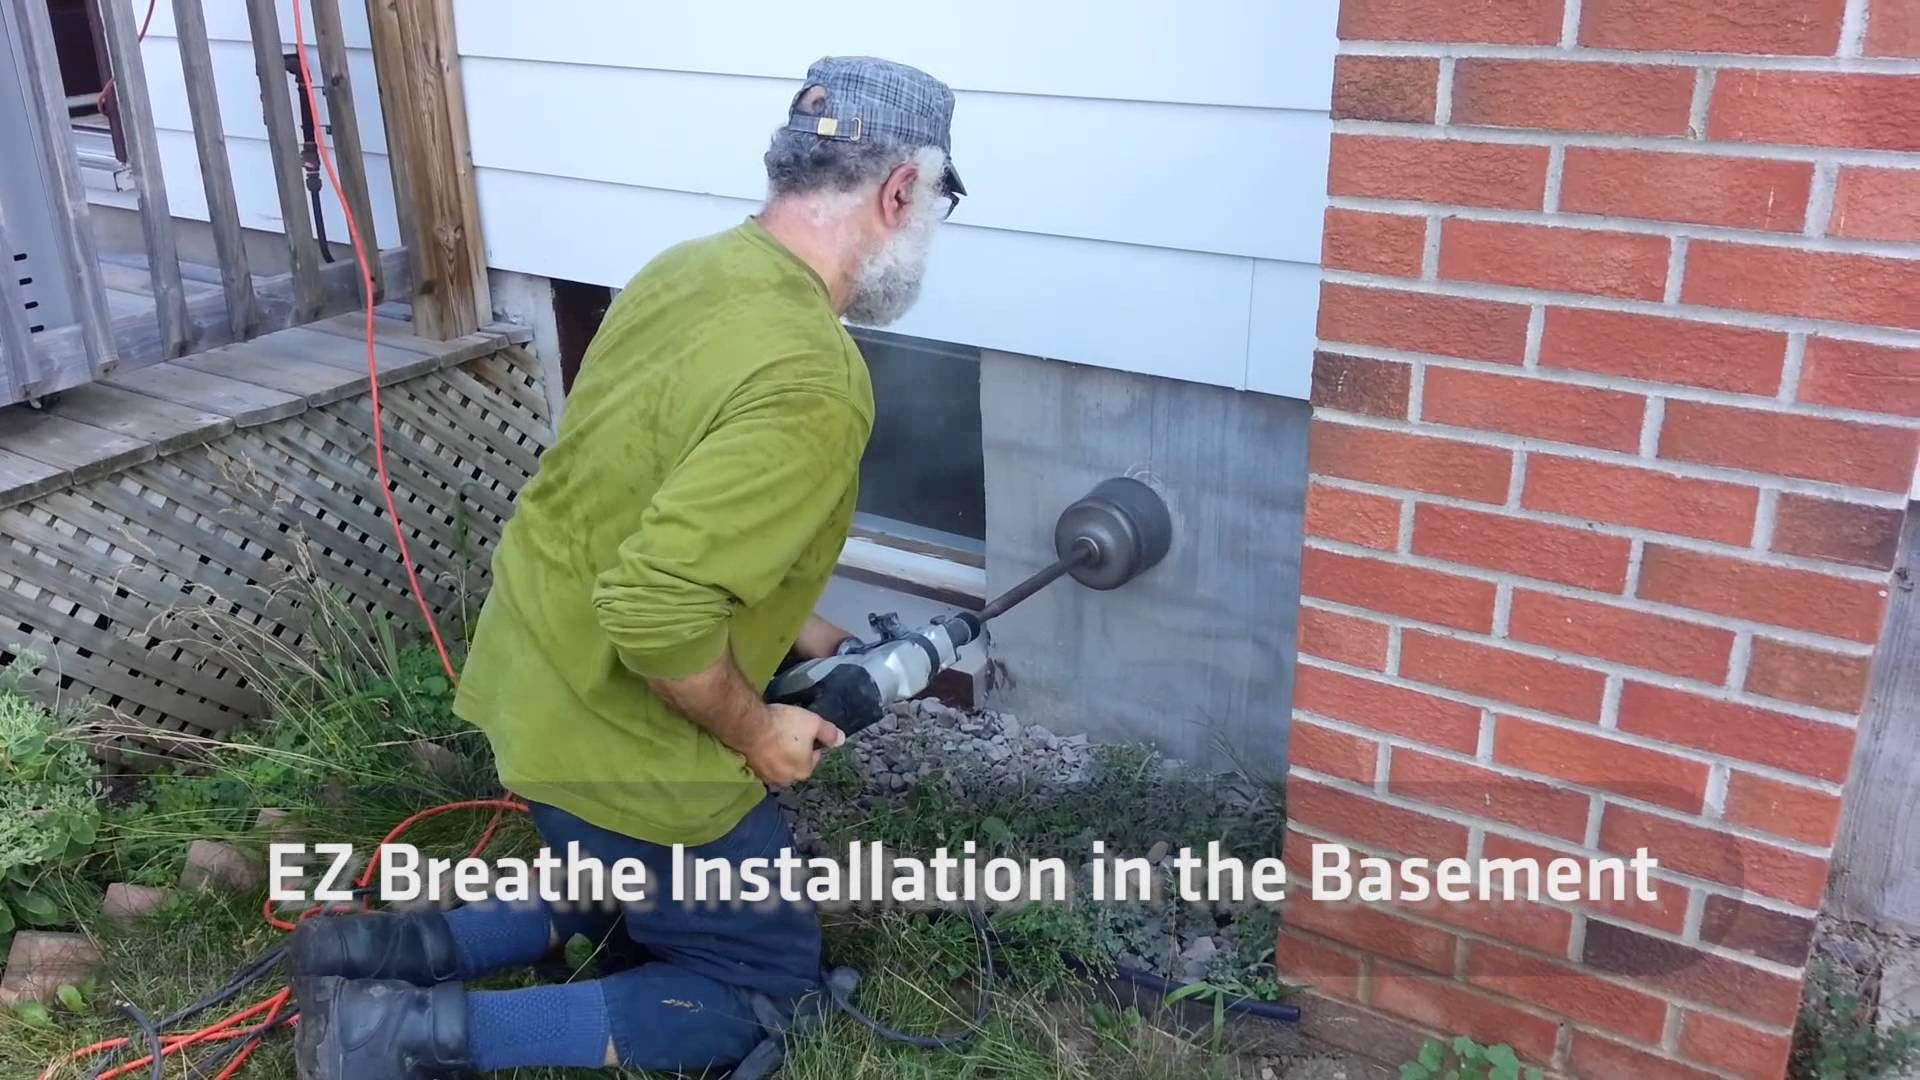 EZ Breathe Ventilation System Installation Instructions